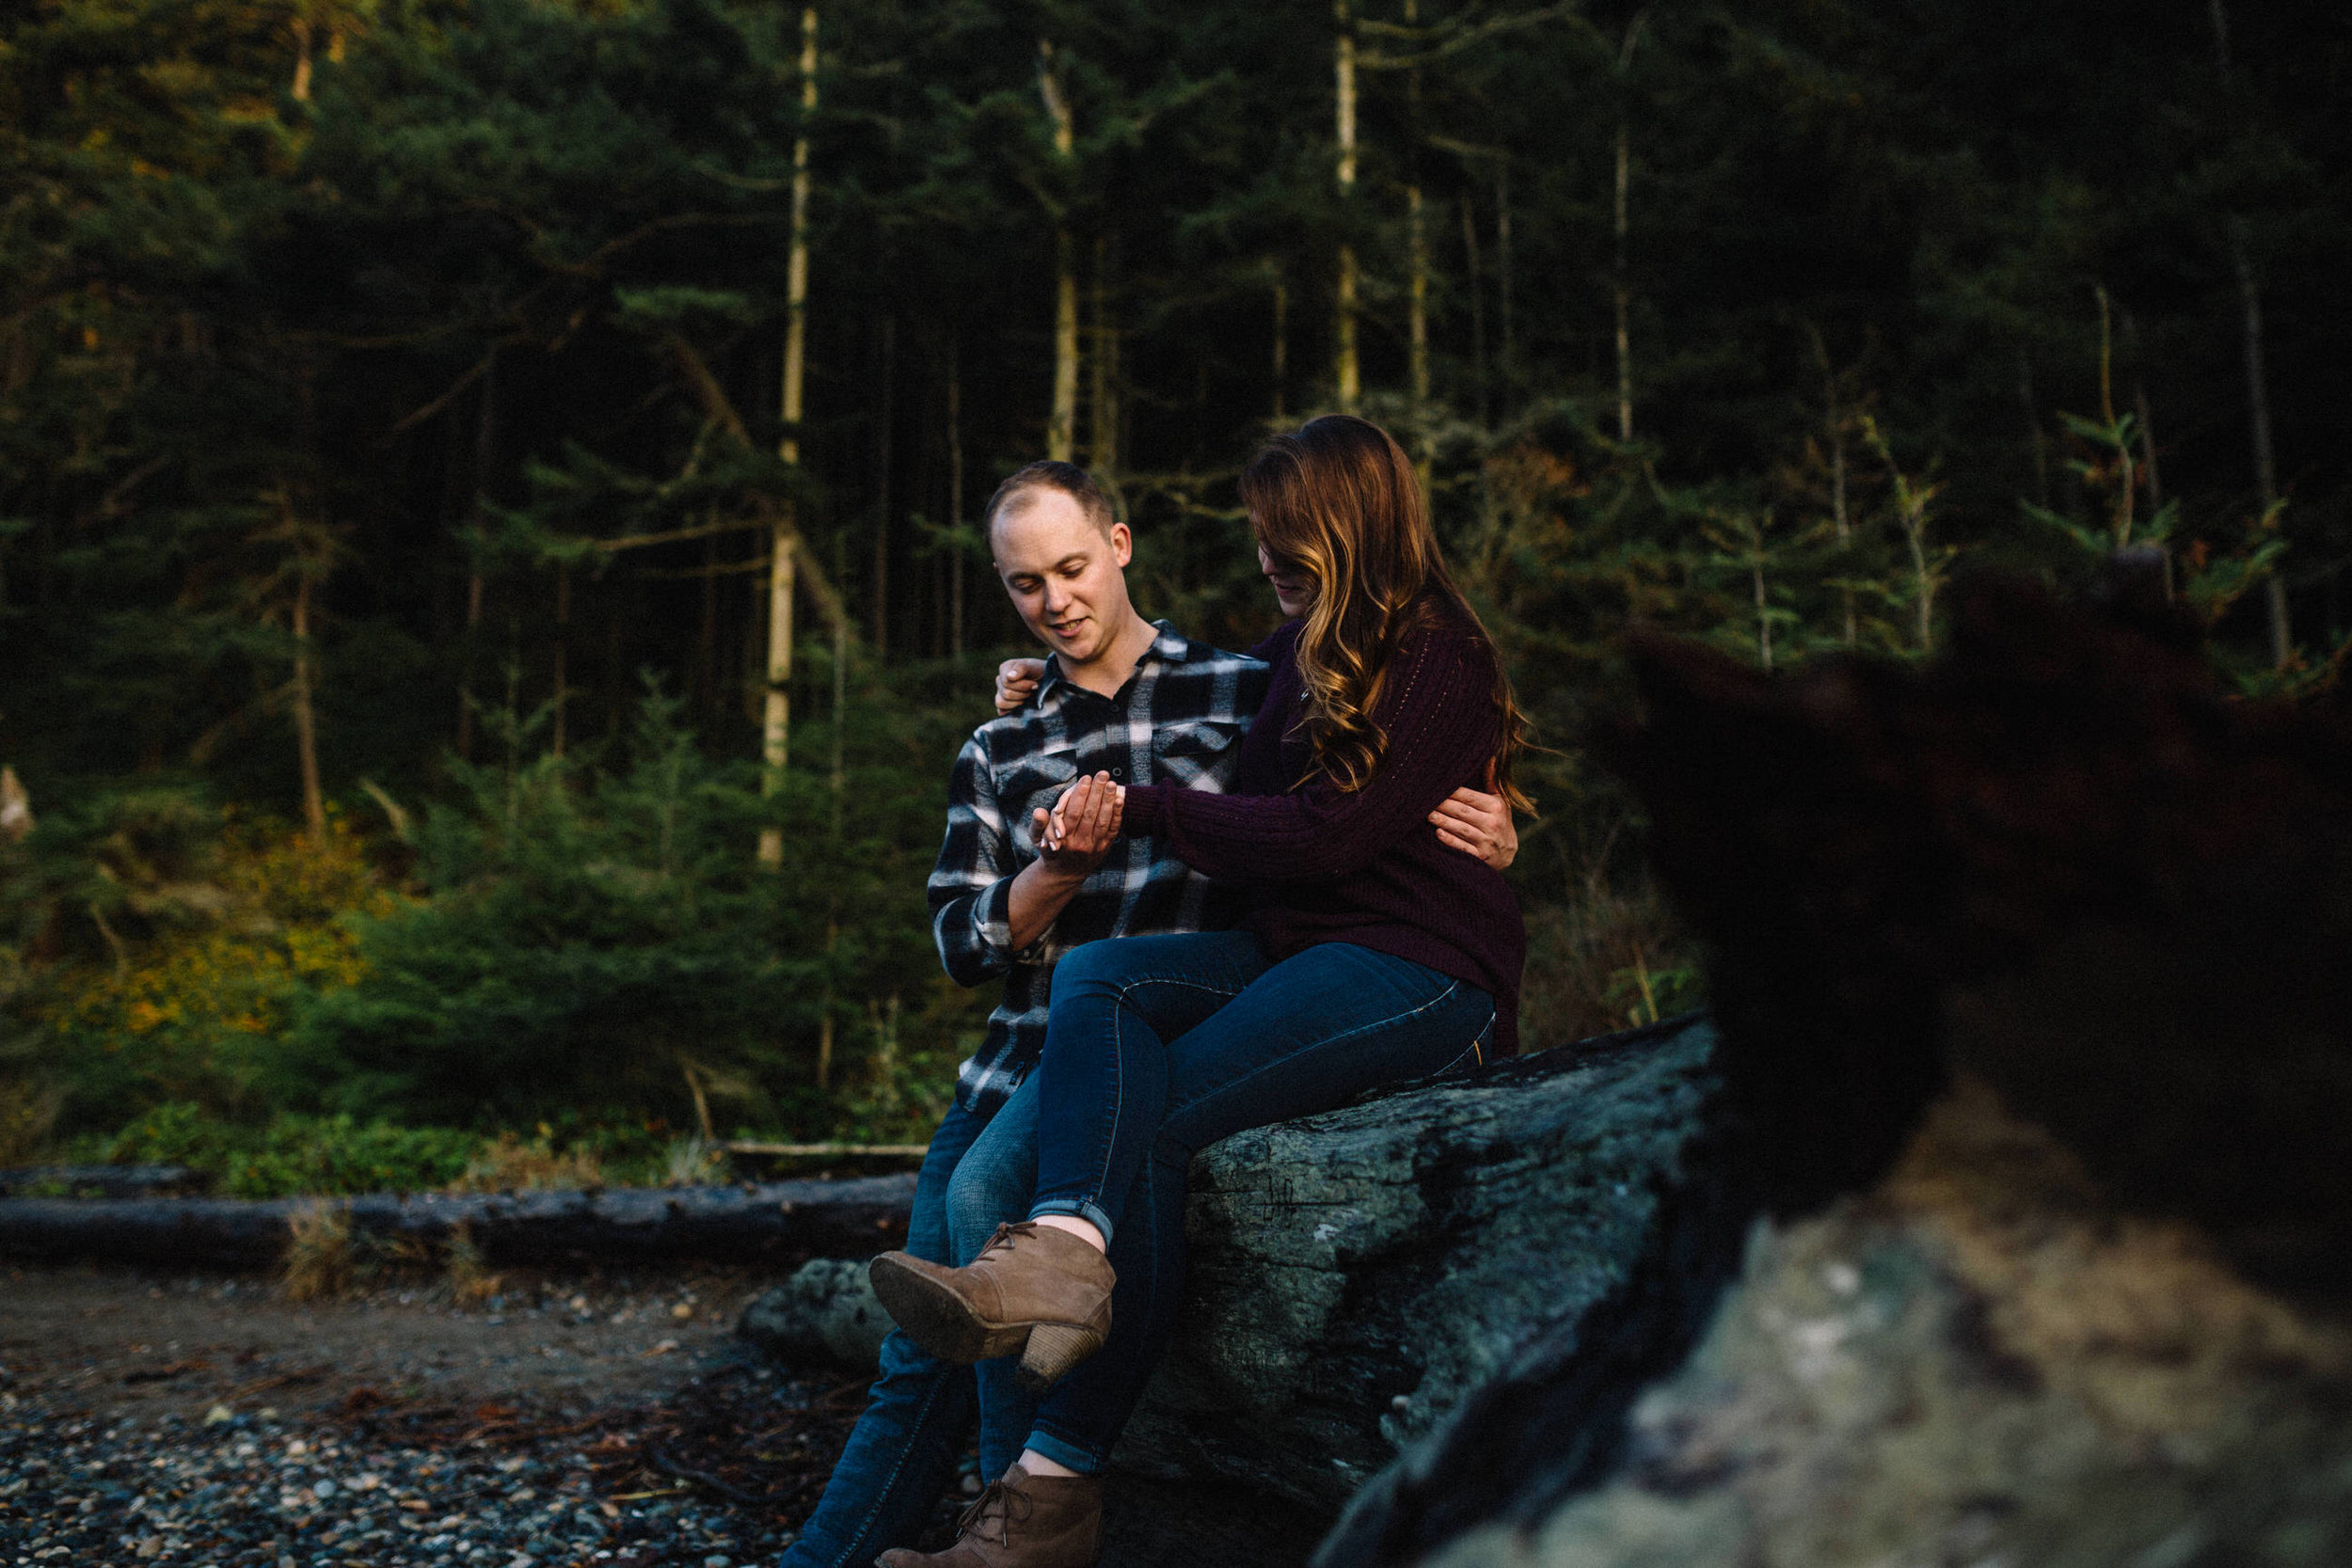 Deception Pass engagement photography Seattle washington0020.JPG